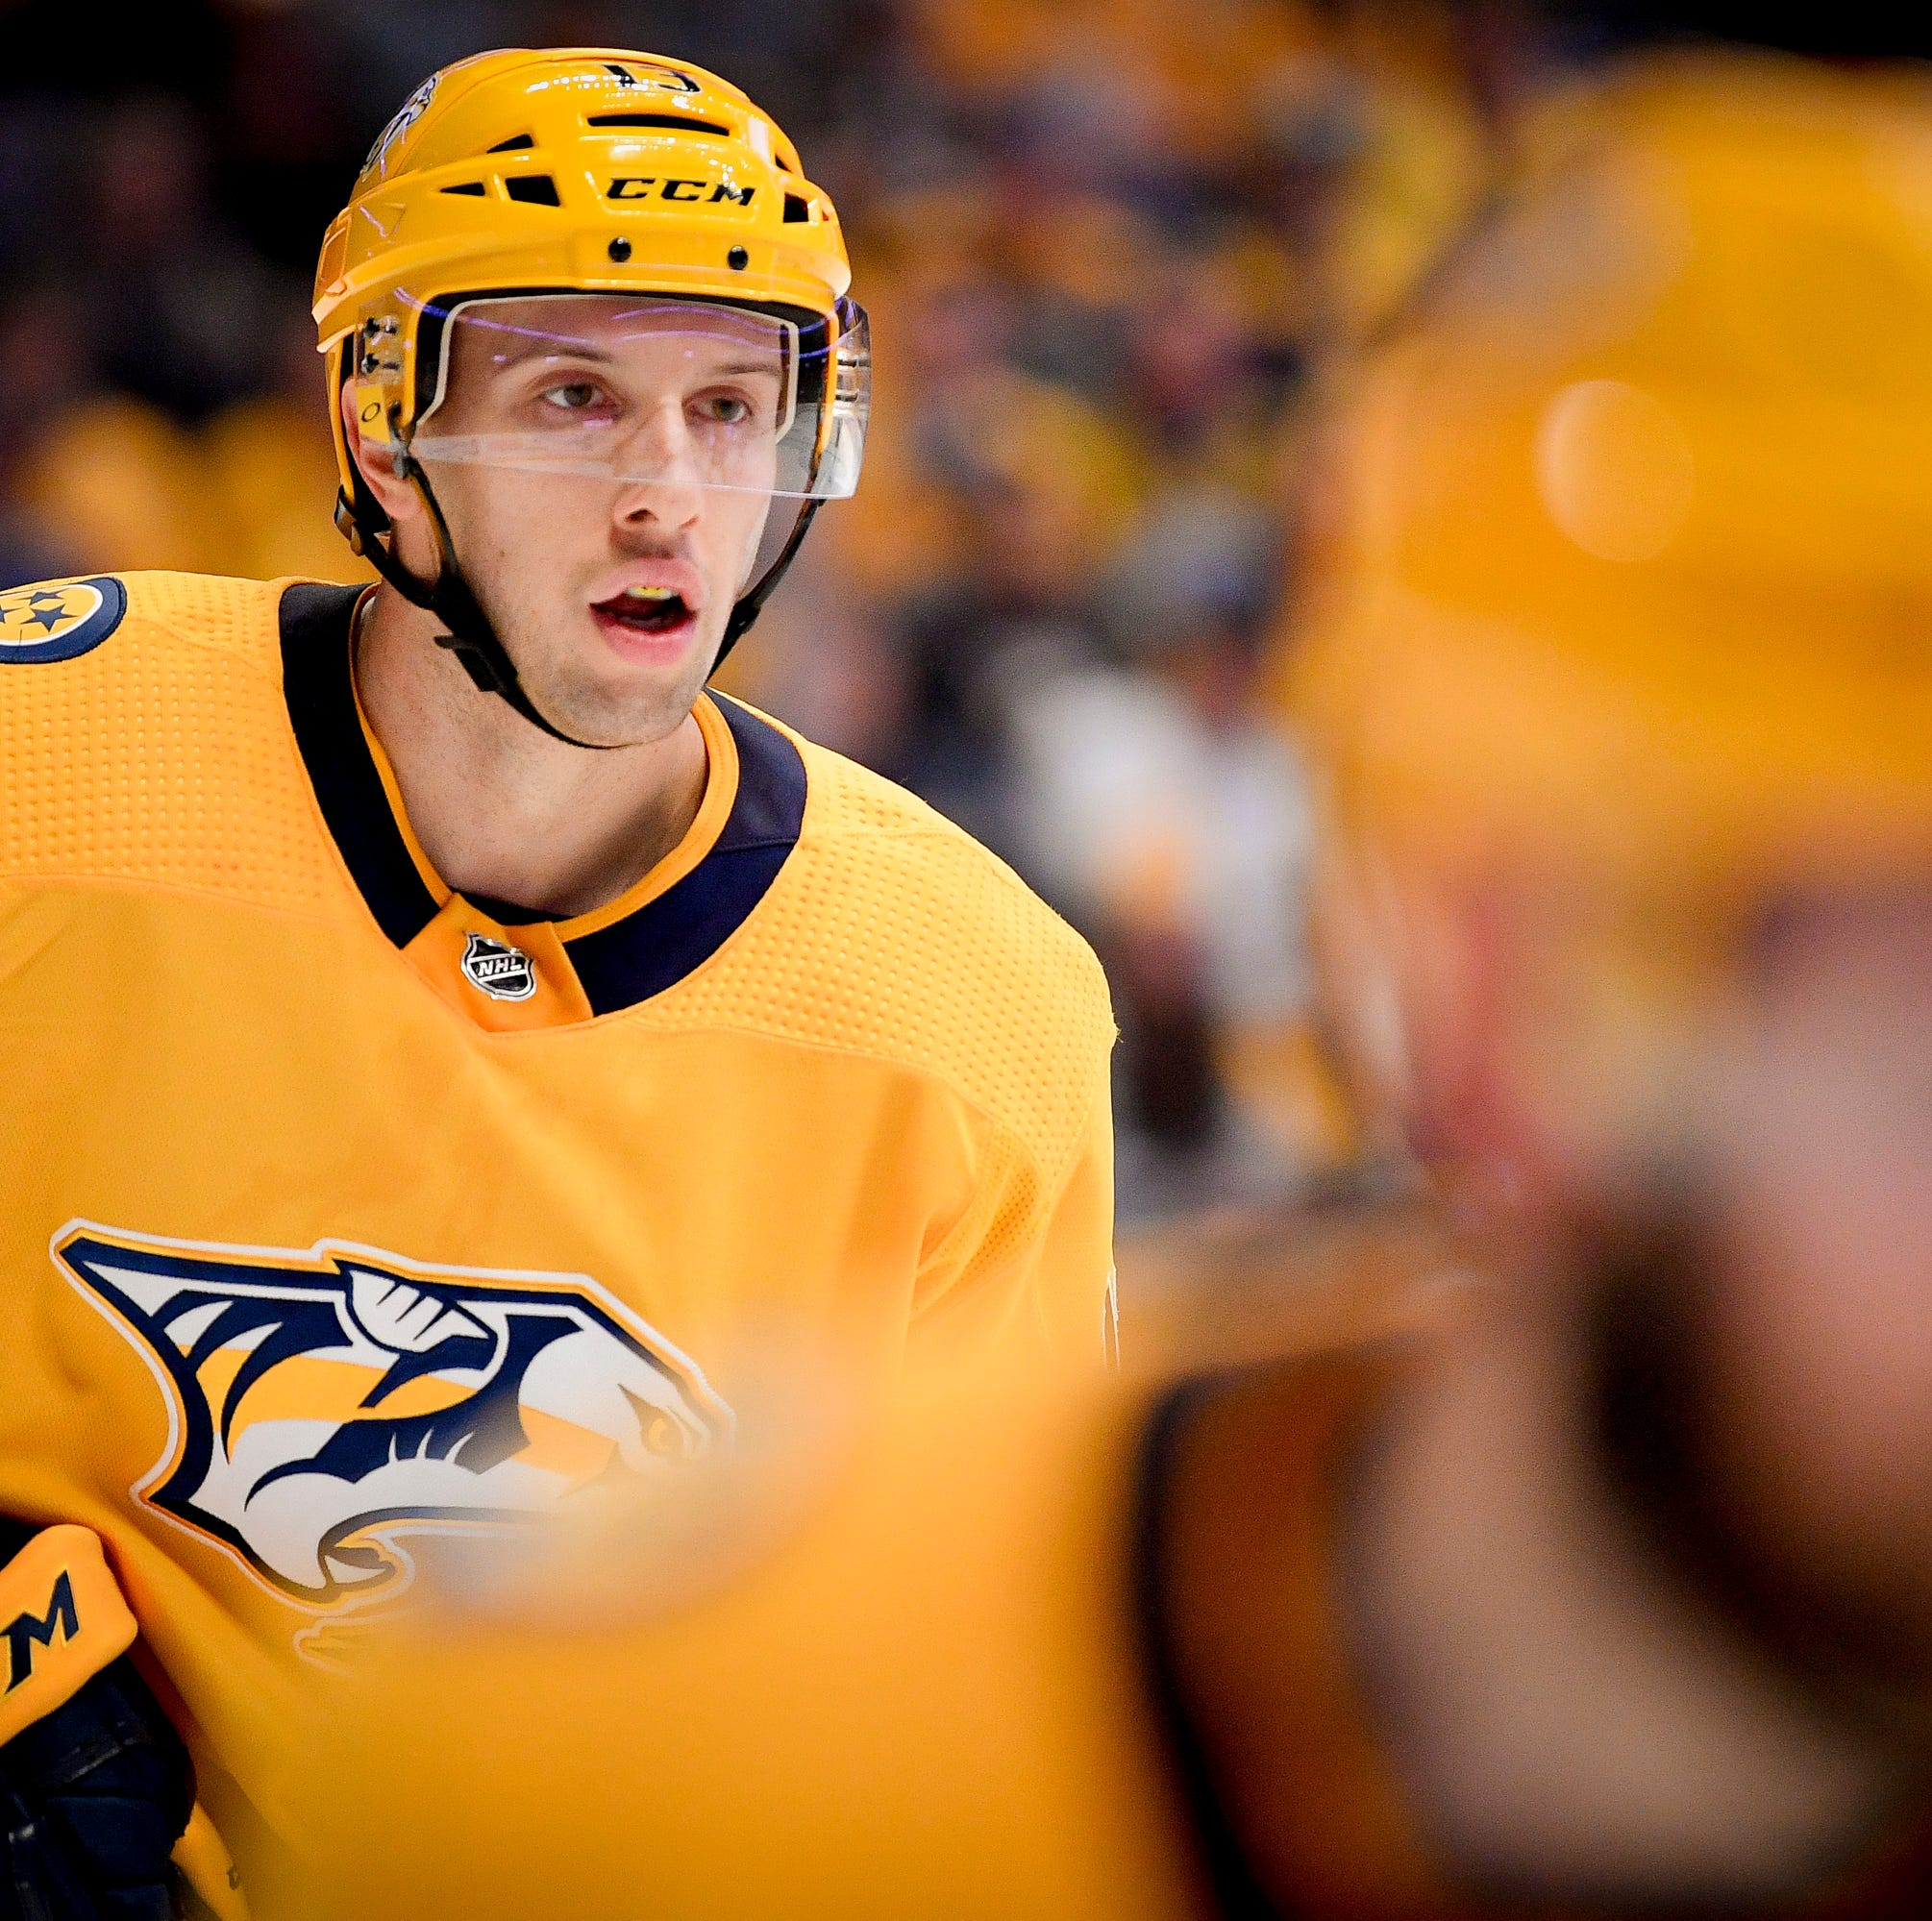 Despite two rings, Predators' Nick Bonino still has eyes on the big prize